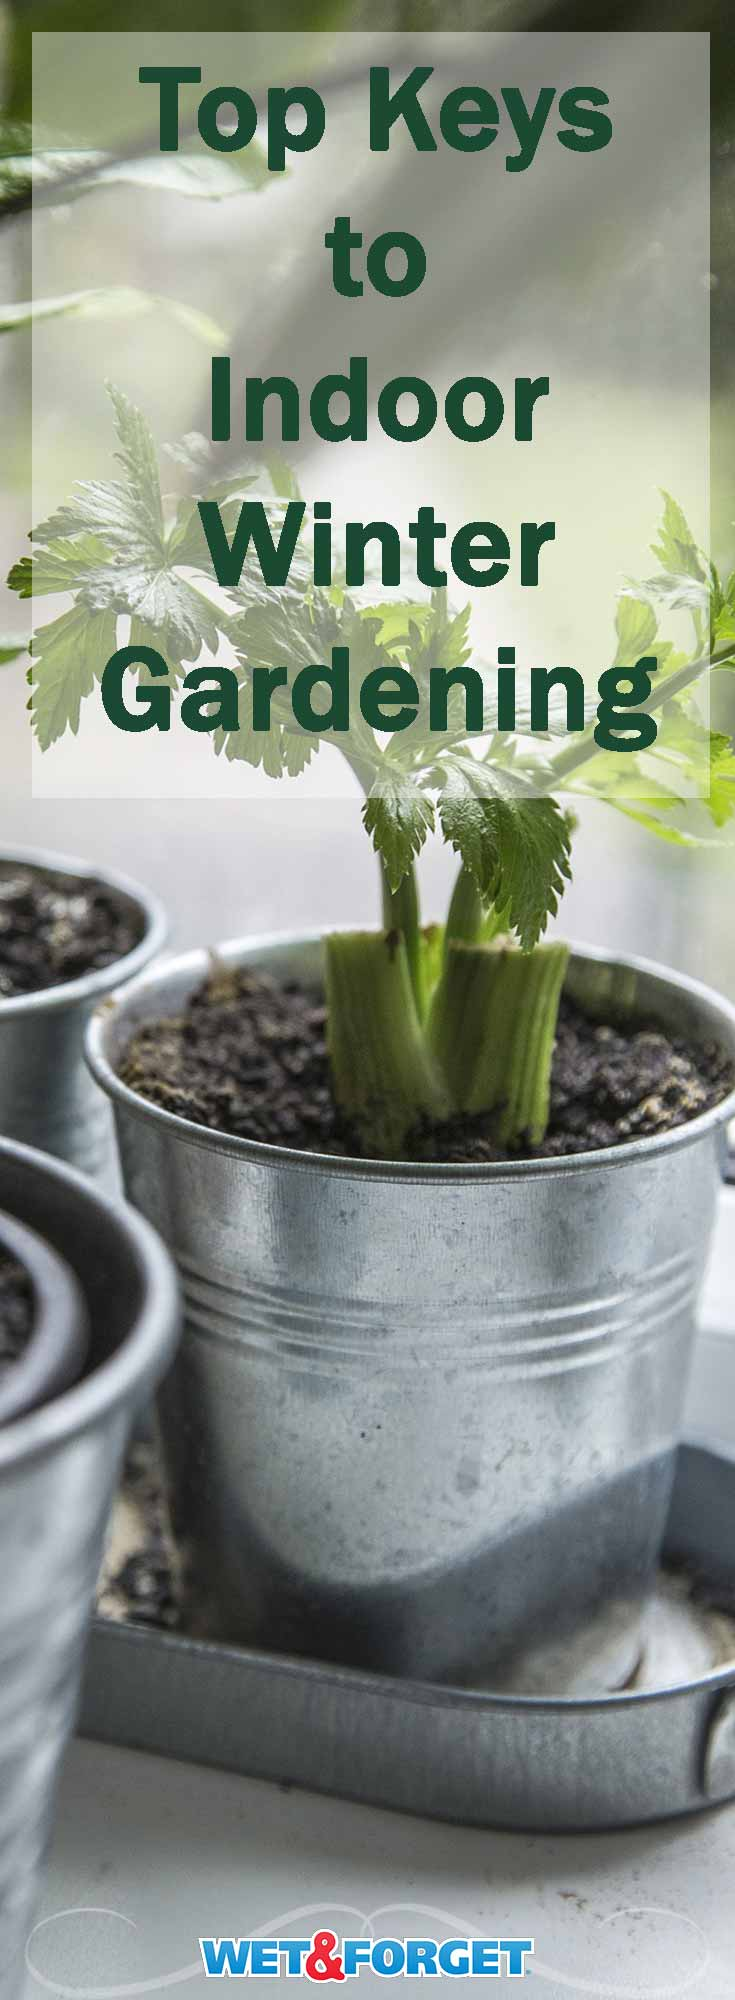 The cool weather has finally hit, but that doesn't mean you have to stop gardening! Follow these keys to keep your indoor garden healthy and strong throughout the season.